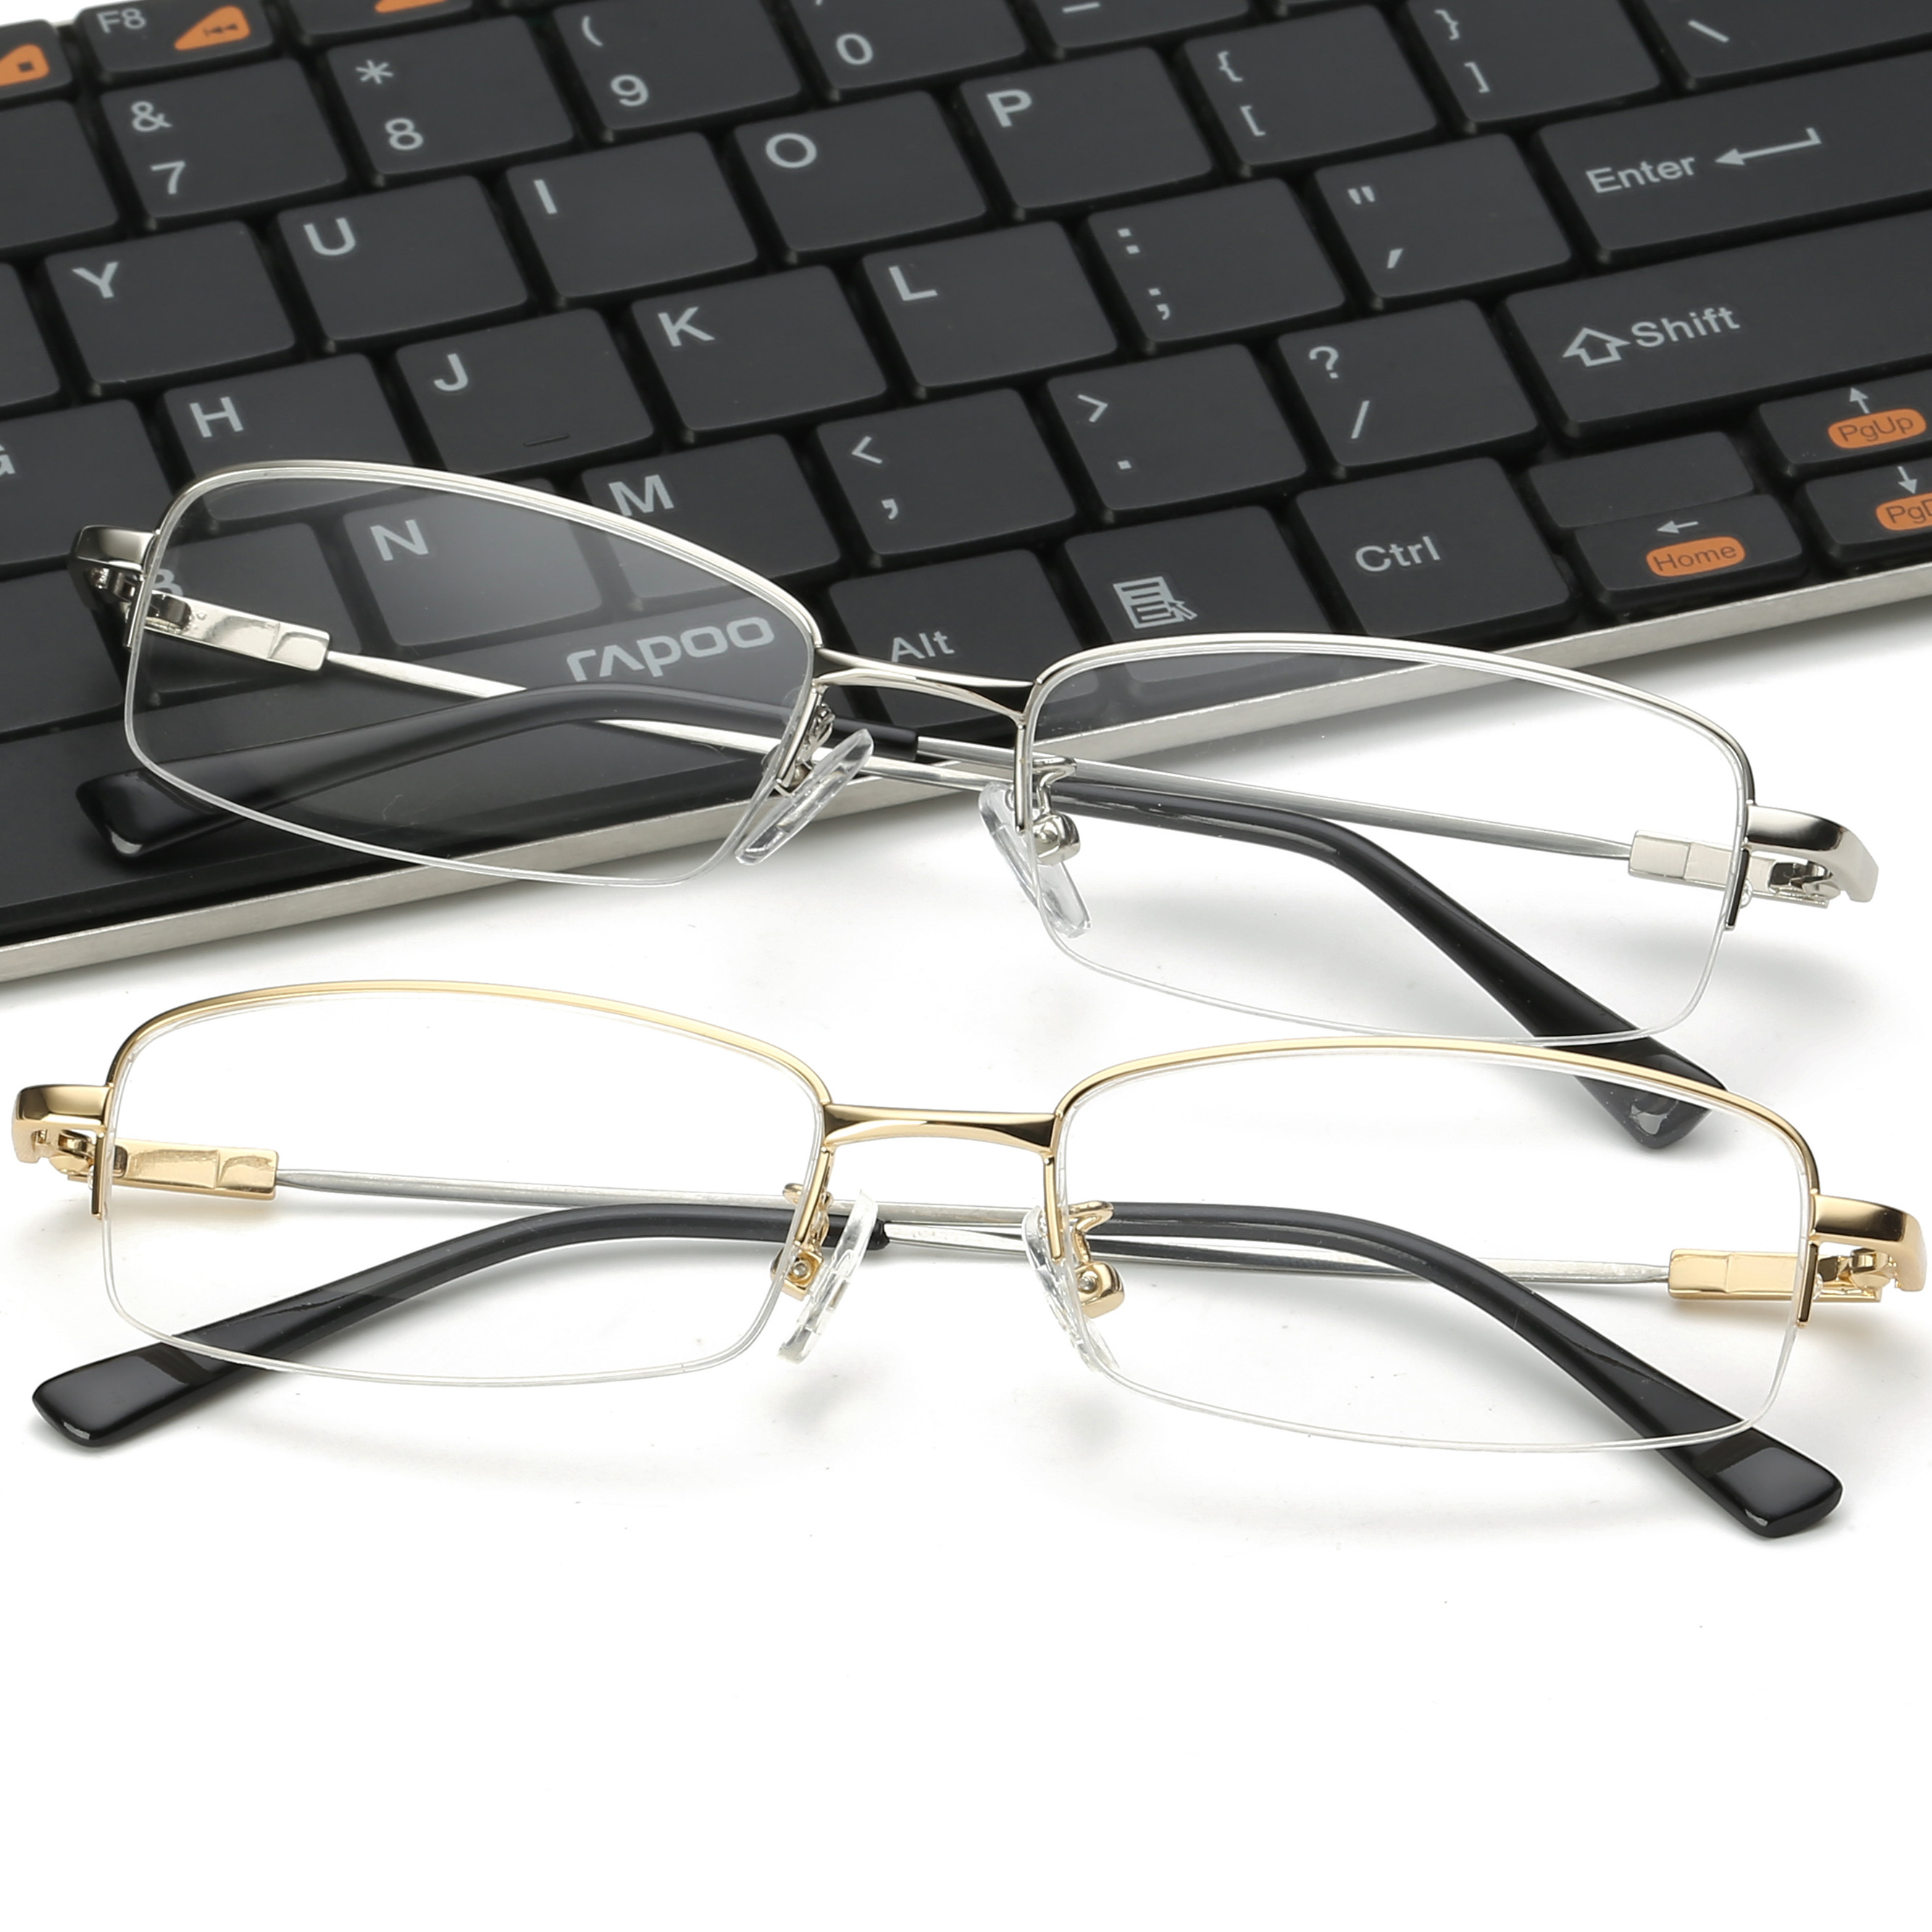 Memory mens and womens half frame with finished myopia glasses 100 / 150 / 200 / 250 / 300 / 350 / 1000 degrees